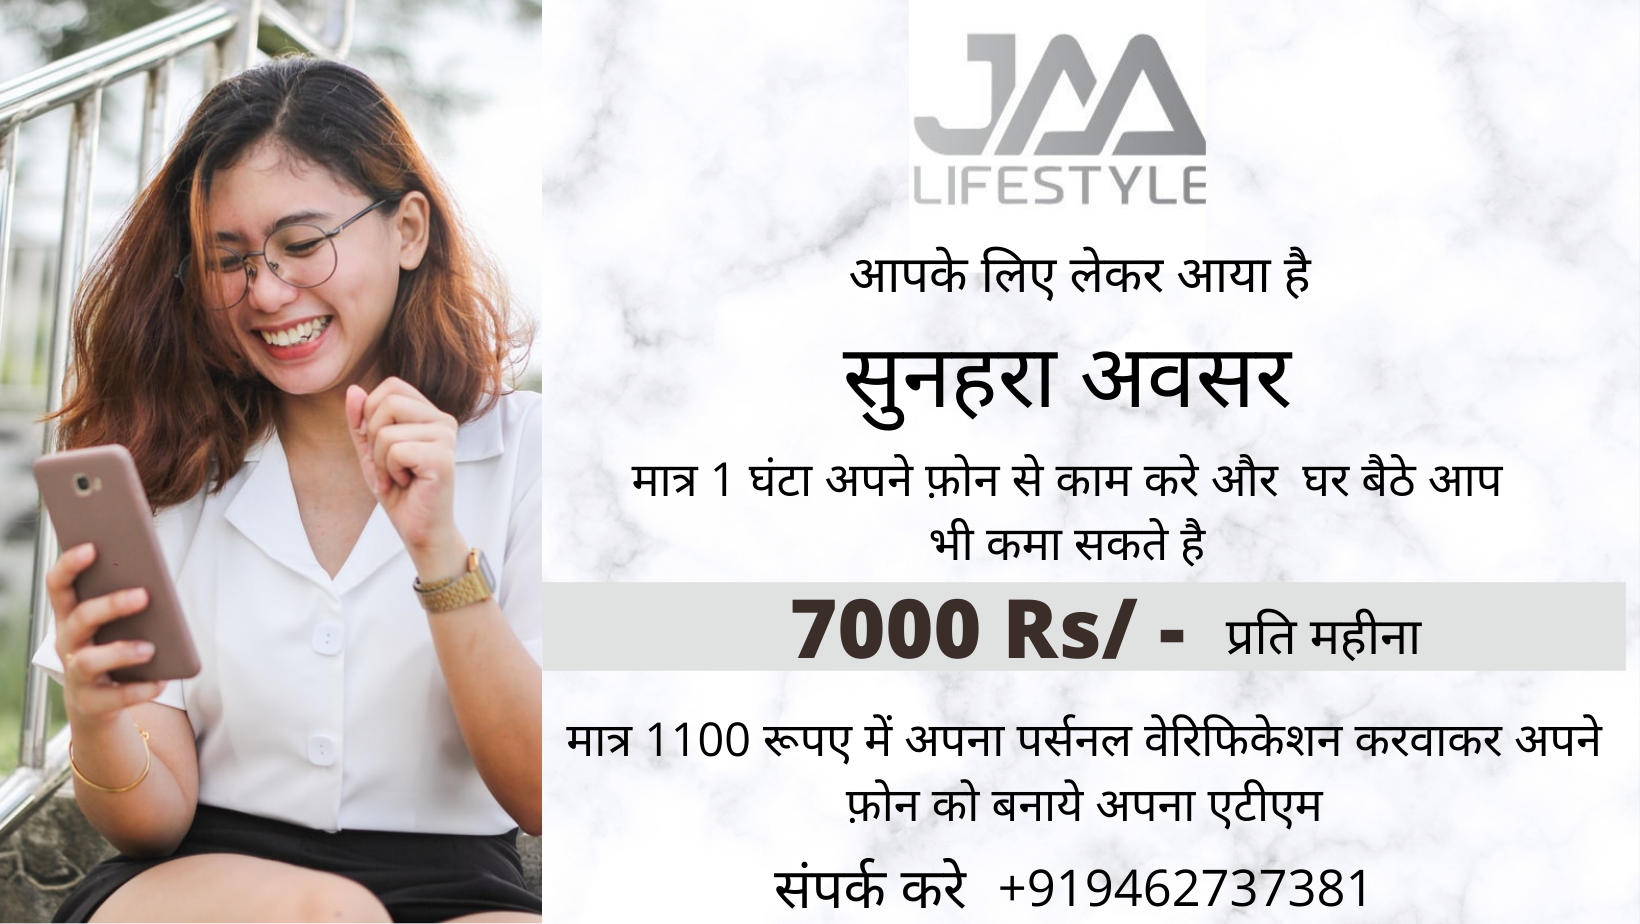 jaa lifestyle hindi plan